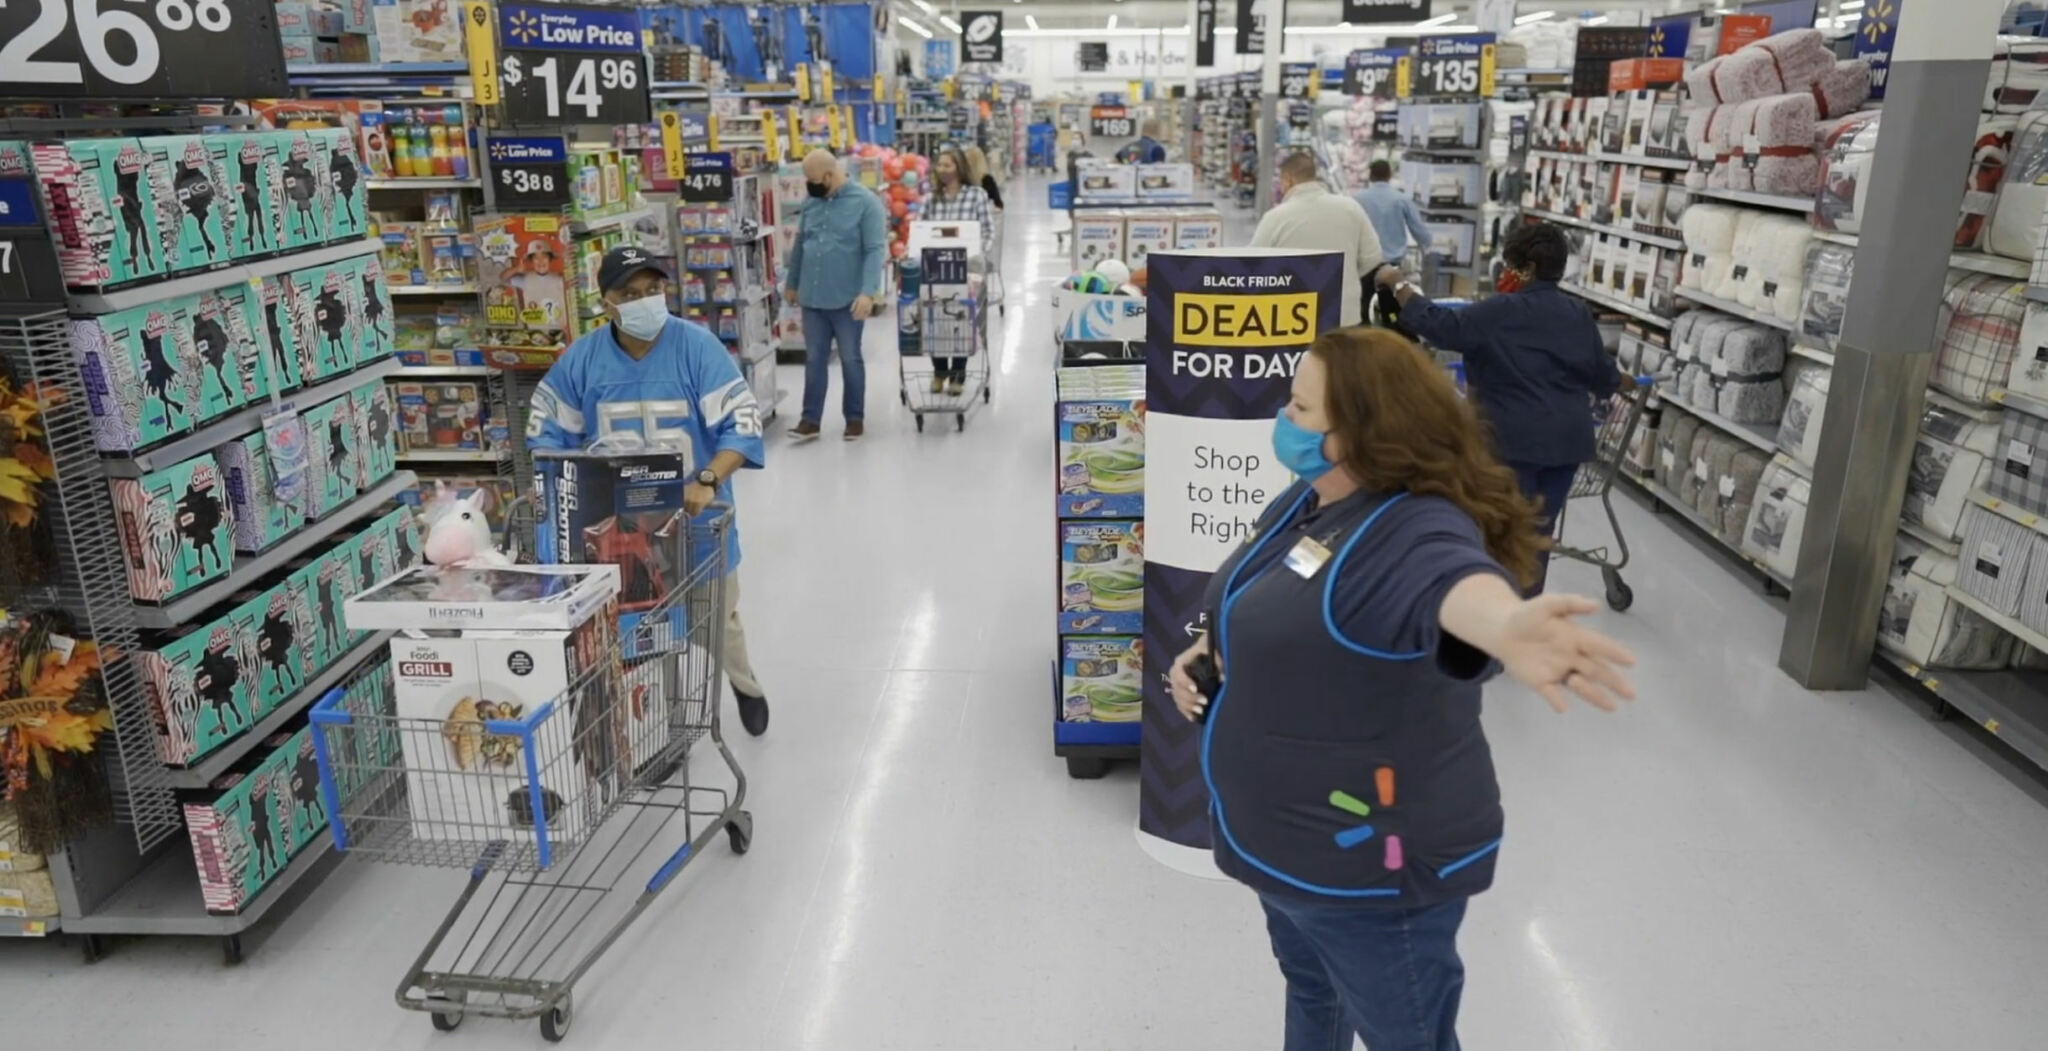 walmart black friday 2020 - photo #8